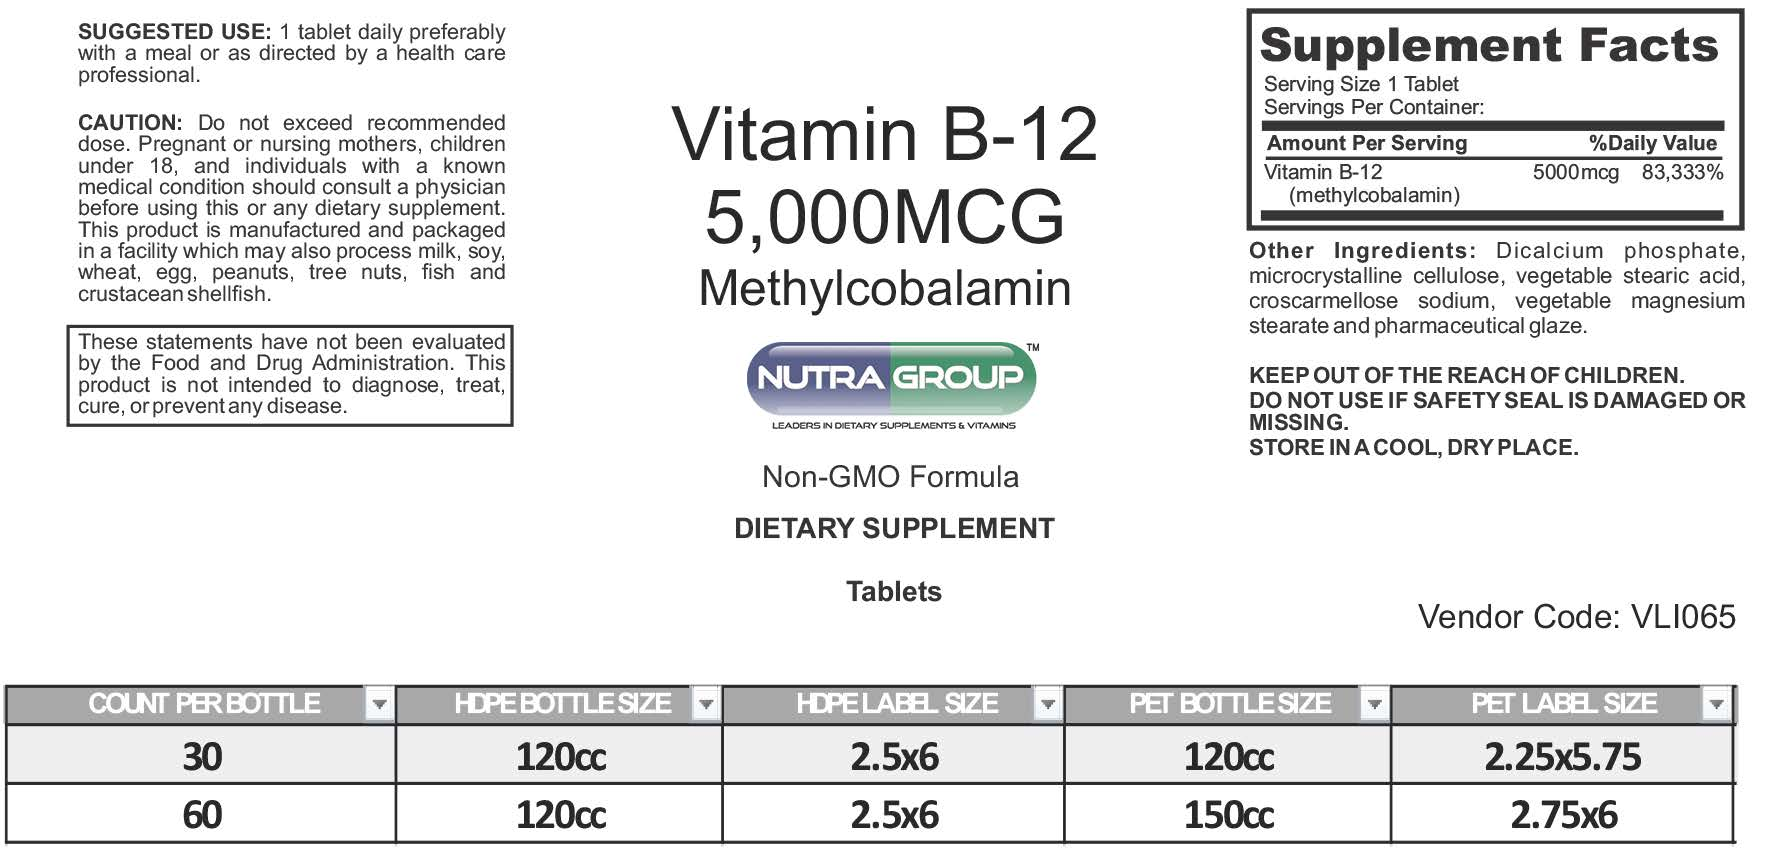 Private label vitamin b12 supplement